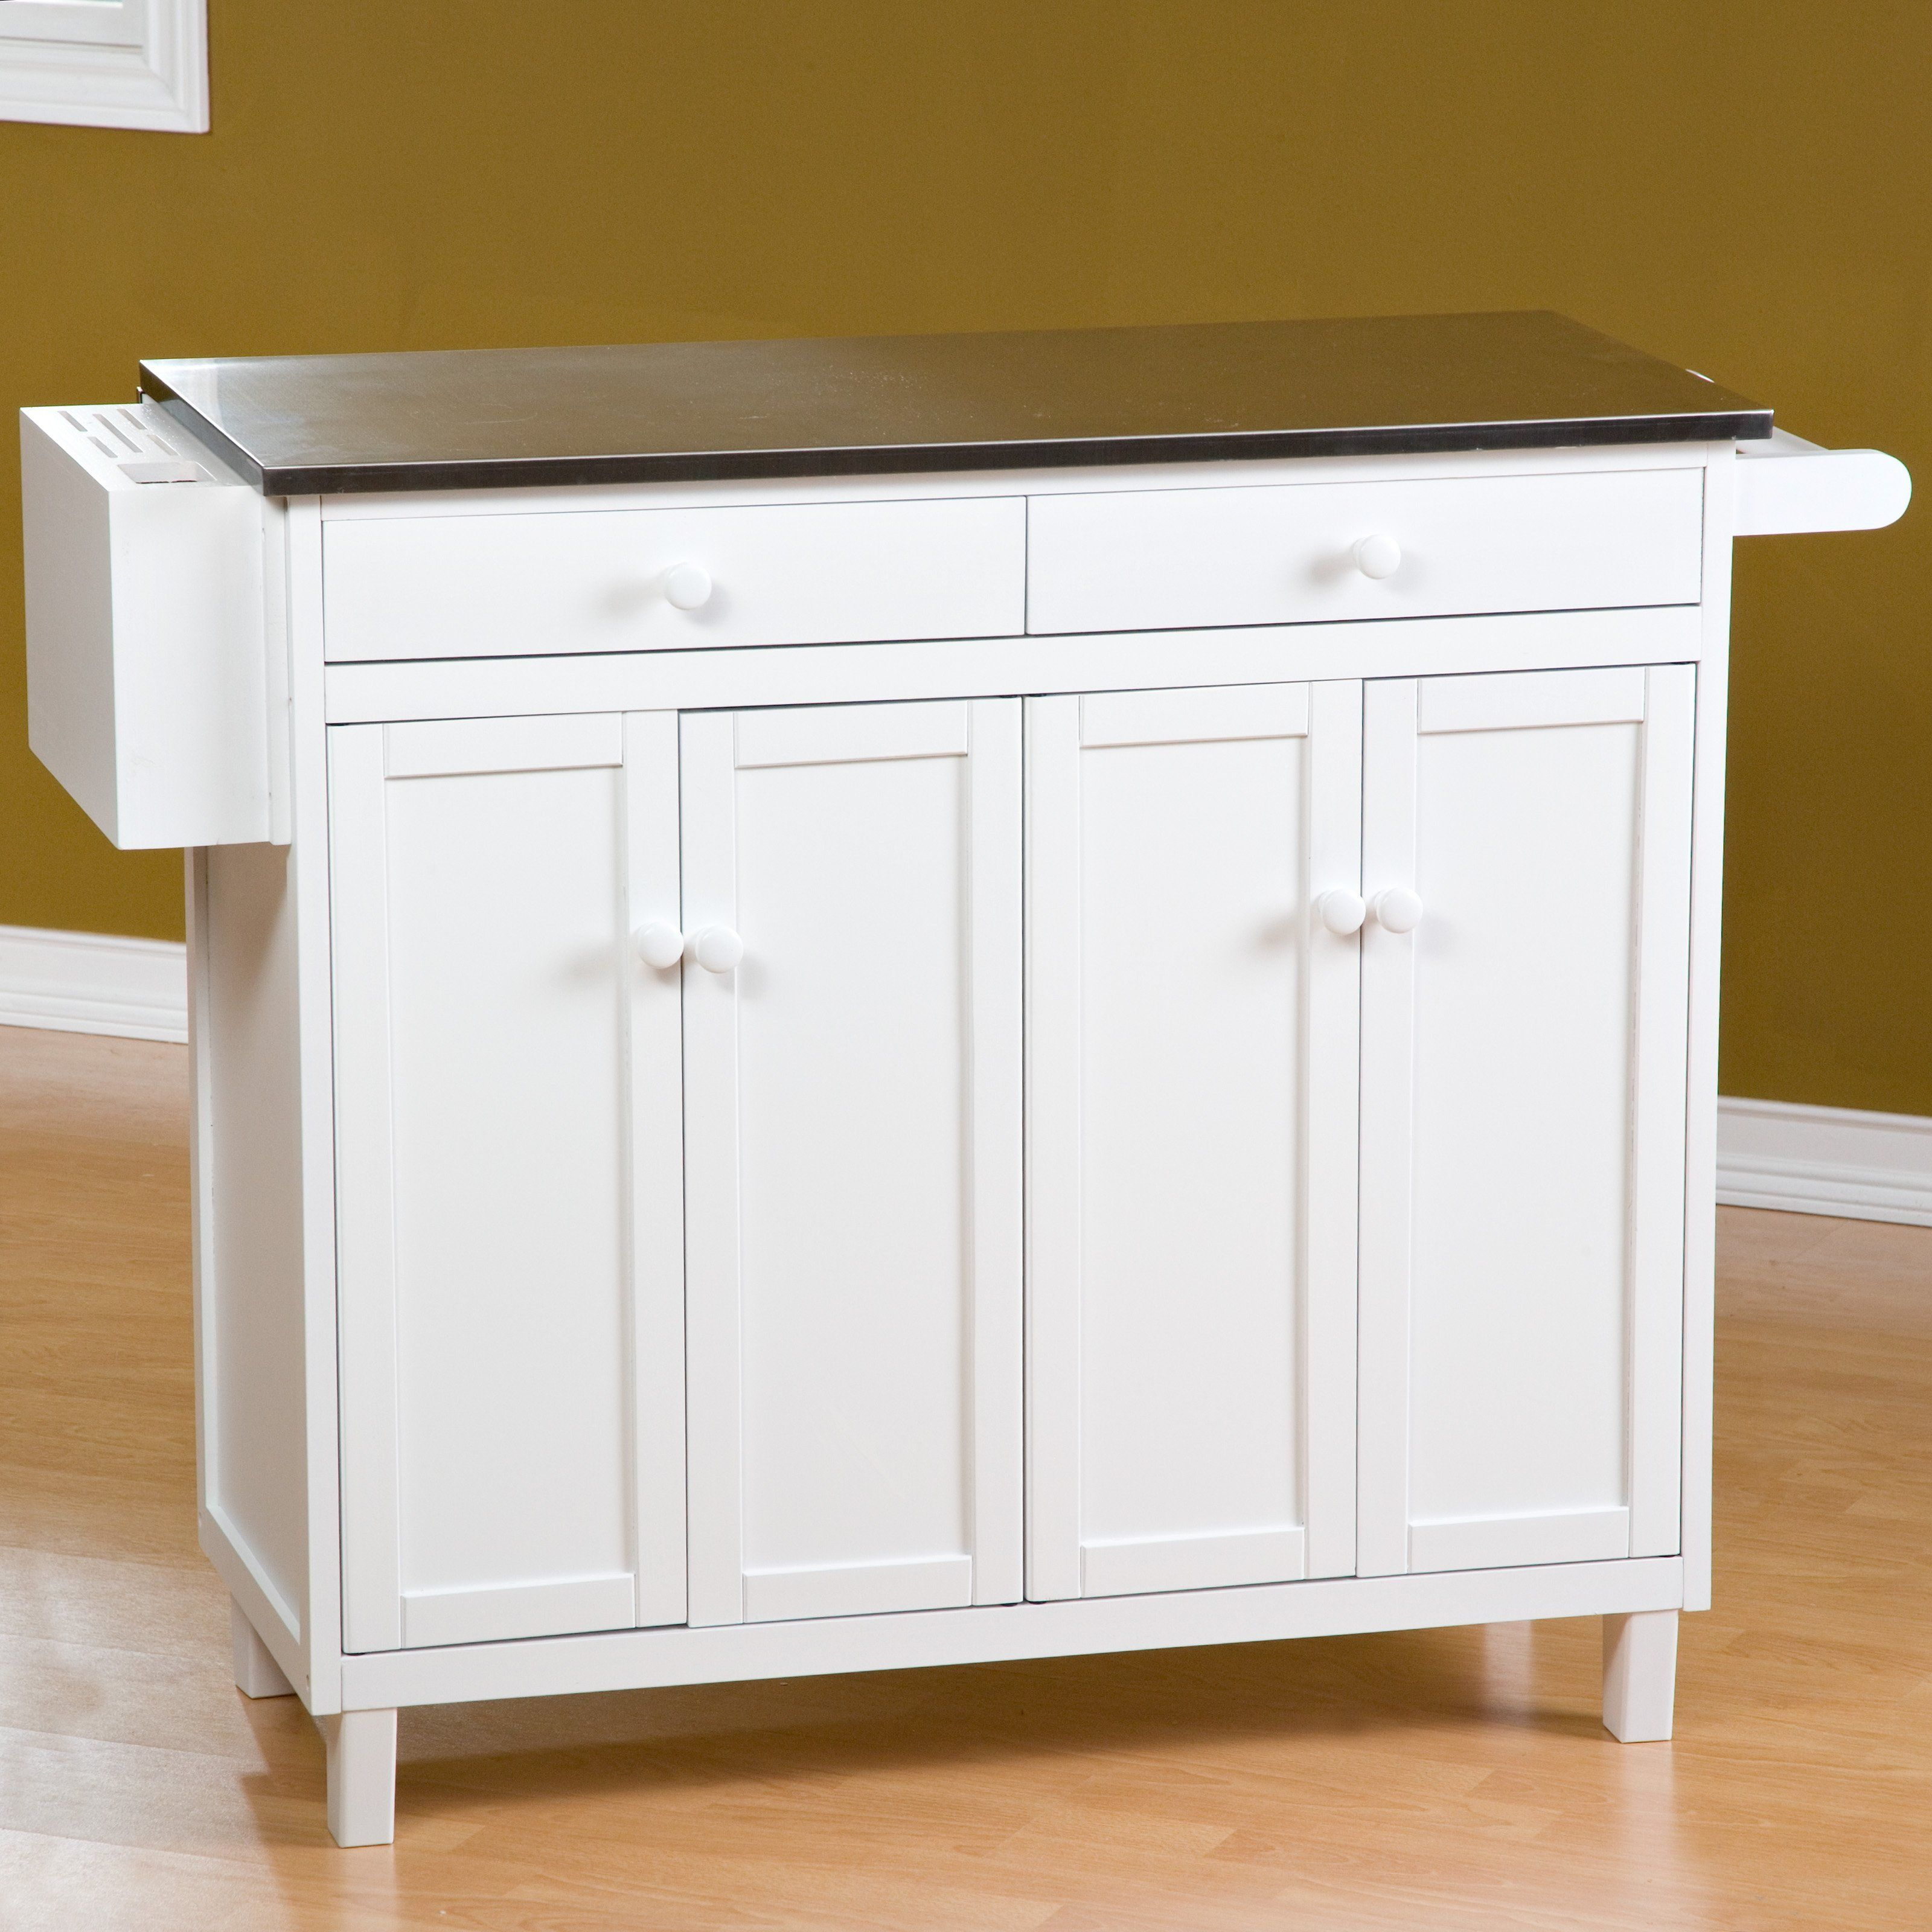 Have to have it. The Randall Stationary Kitchen Island with Optional Stools $399.98